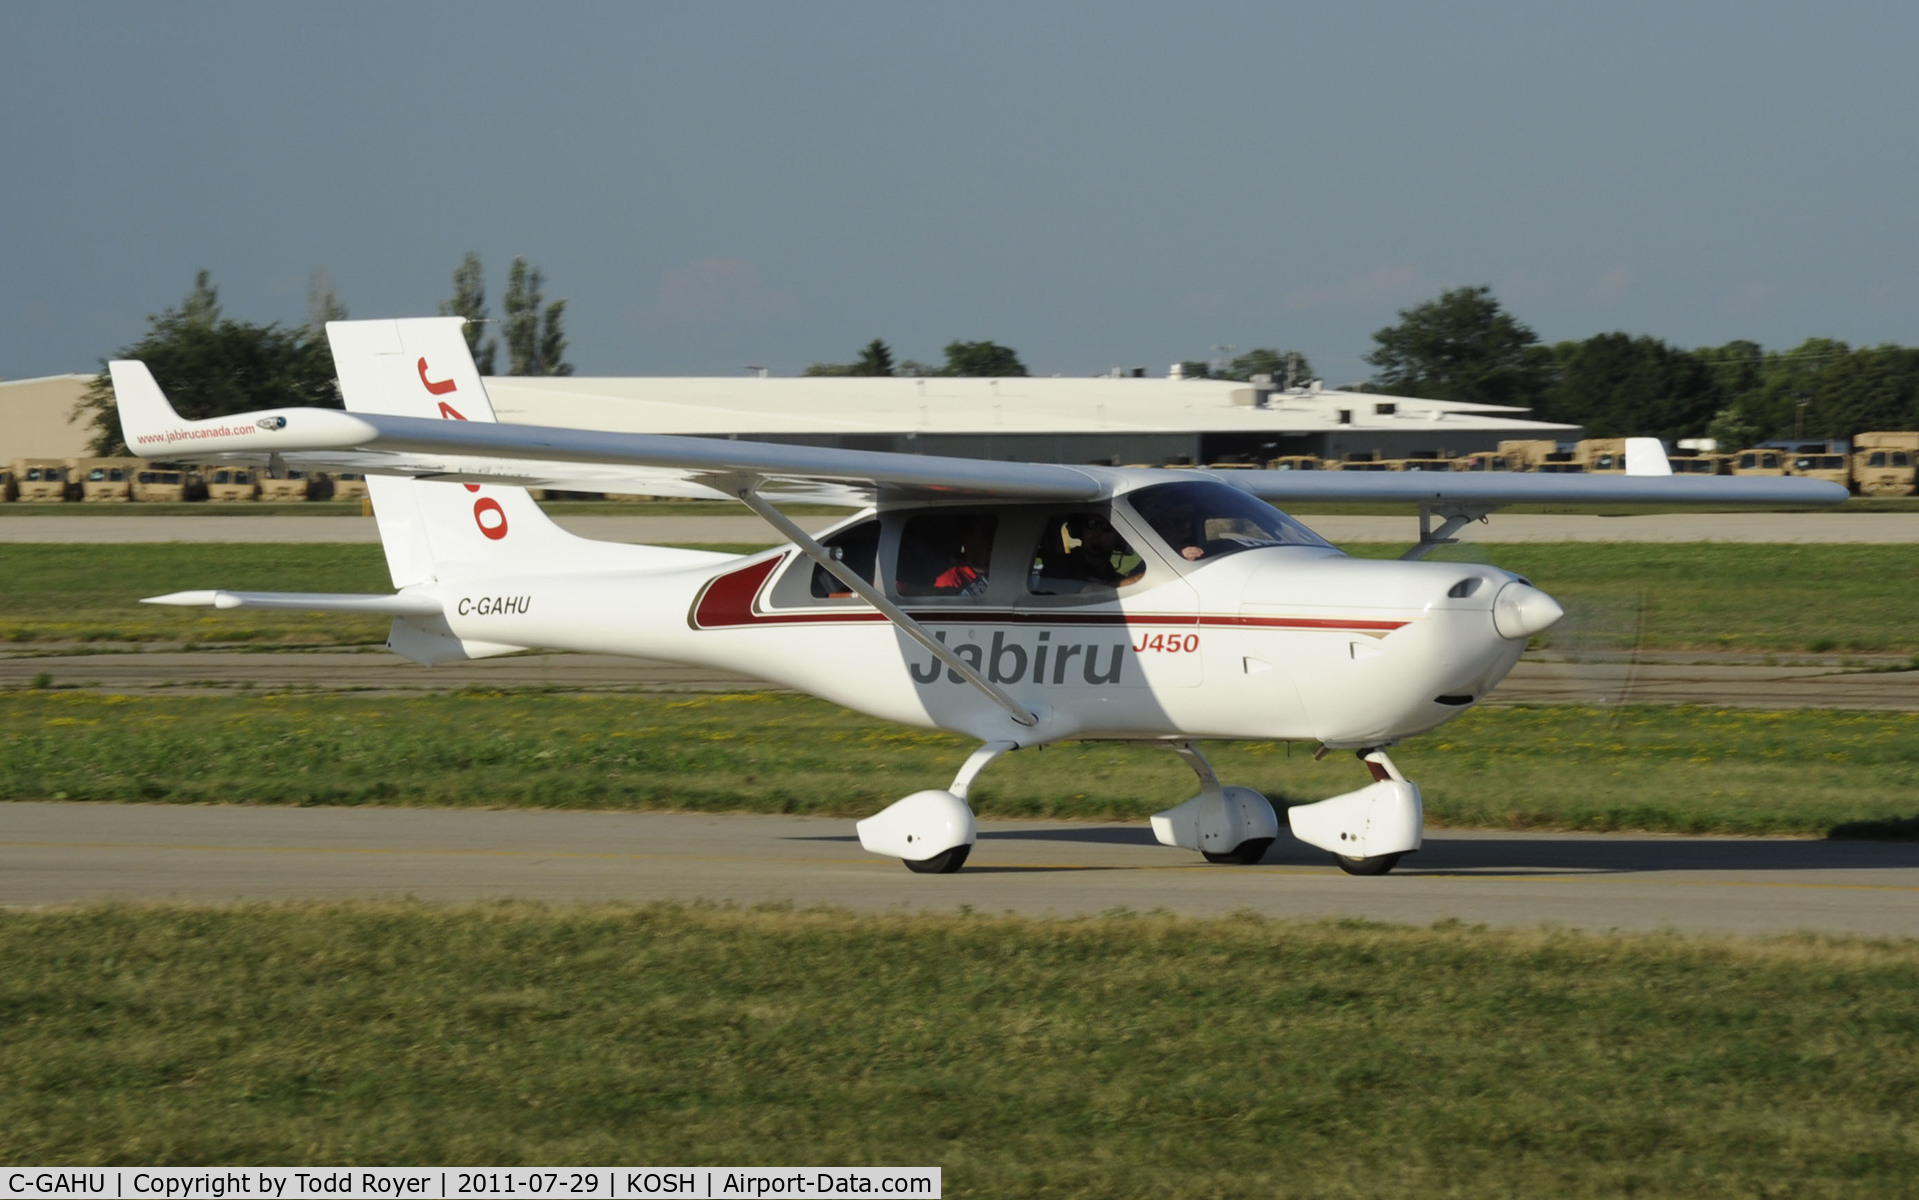 Aircraft C-GAHU (2004 Jabiru J450 C/N 101) Photo by Todd